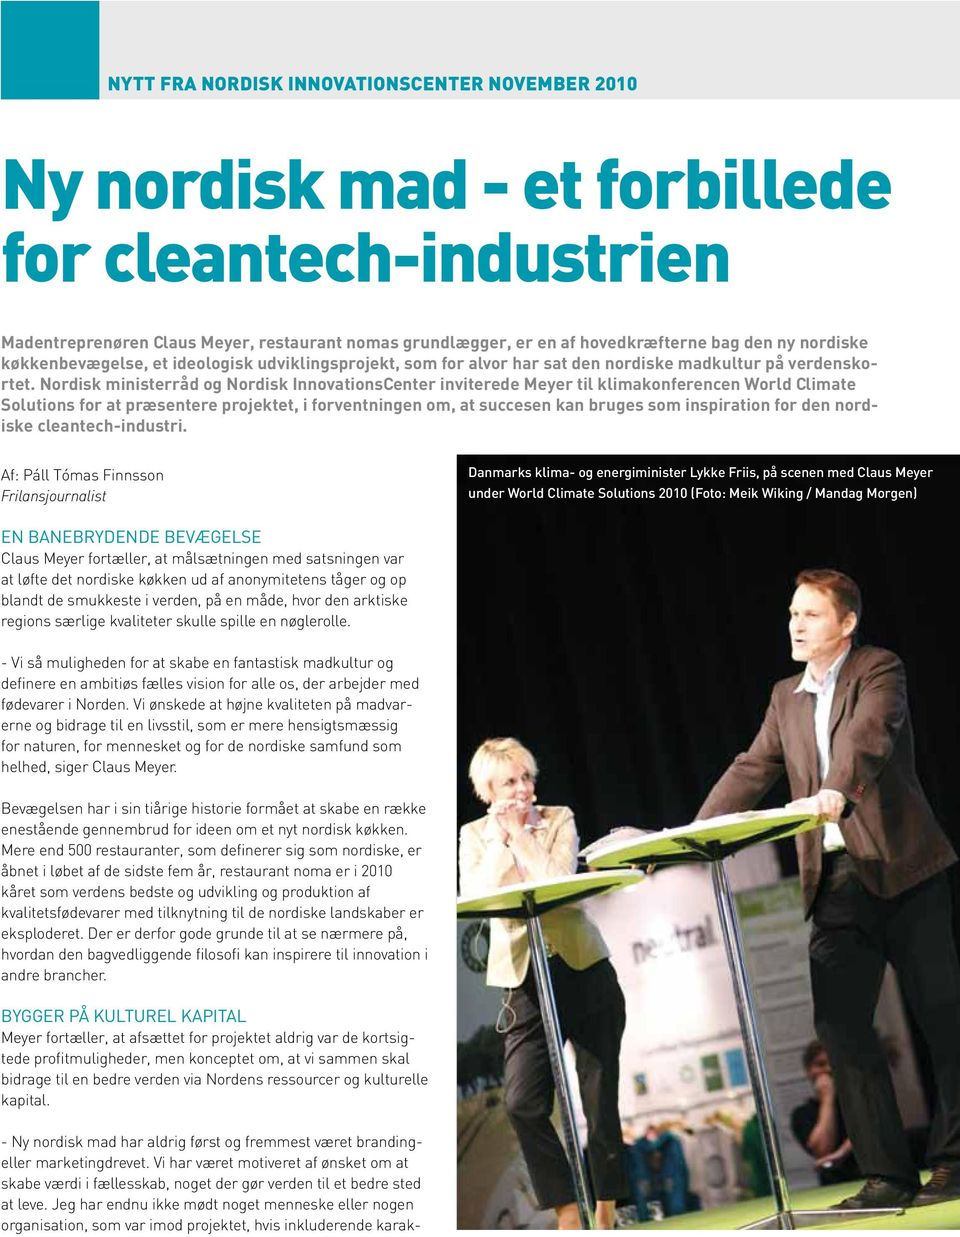 Nordisk ministerråd og Nordisk InnovationsCenter inviterede Meyer til klimakonferencen World Climate Solutions for at præsentere projektet, i forventningen om, at succesen kan bruges som inspiration